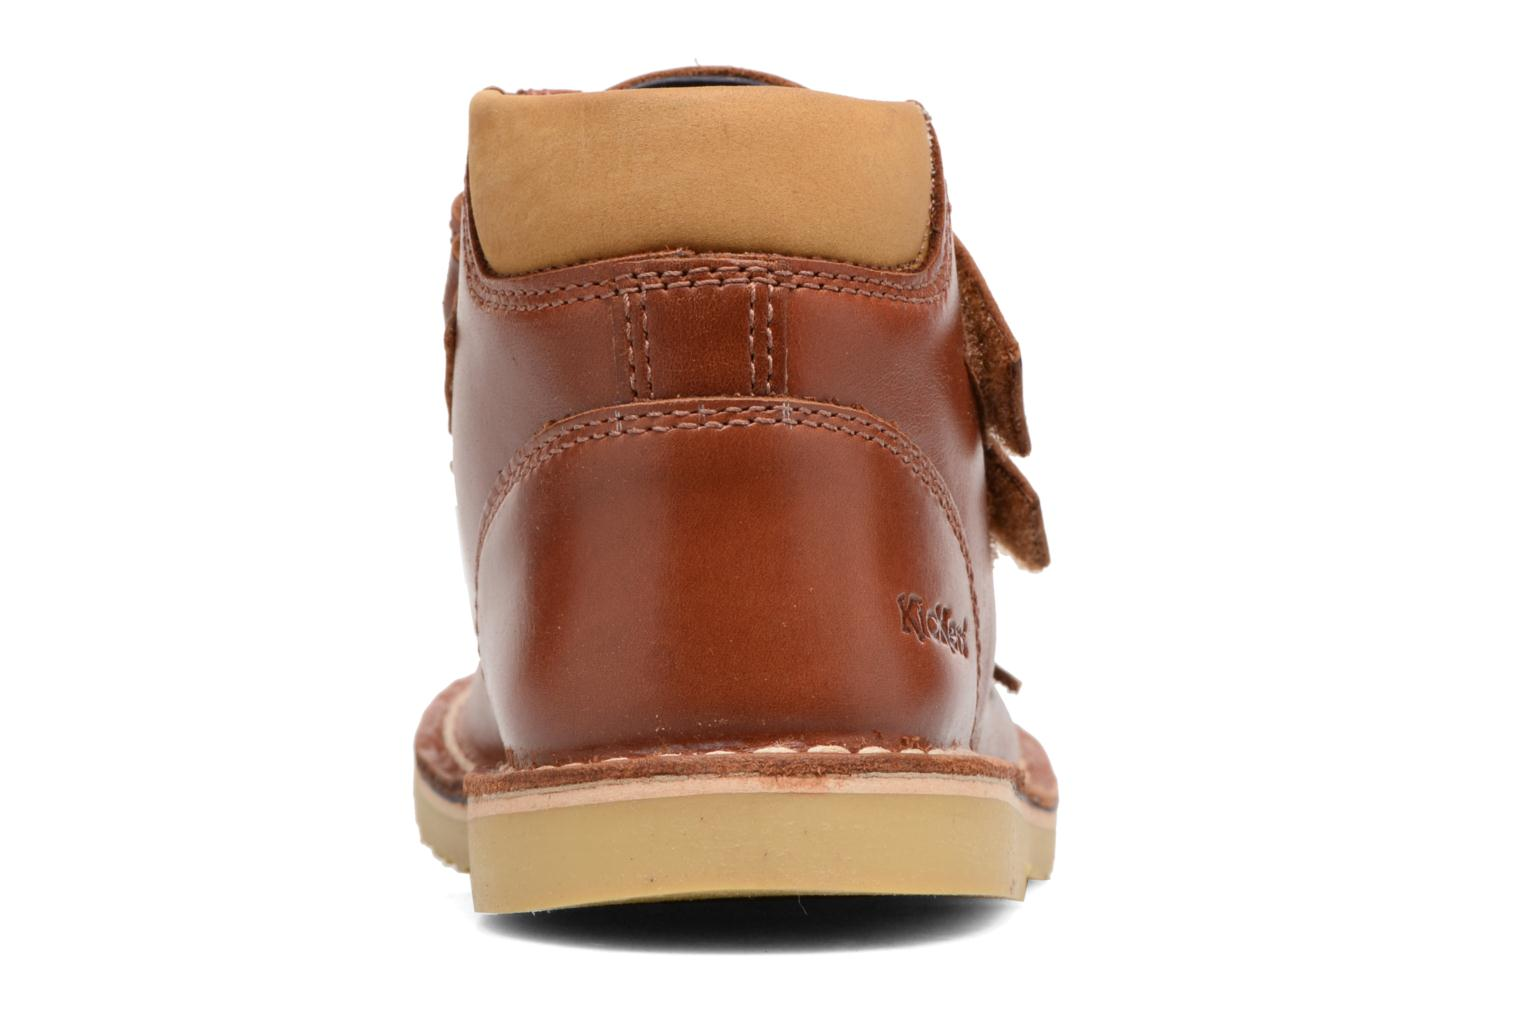 Tan Leather Kickers Kickers Twin Twin Kickers Tan Tan Adlar Leather Adlar Kickers Adlar Leather Twin HXWFwT